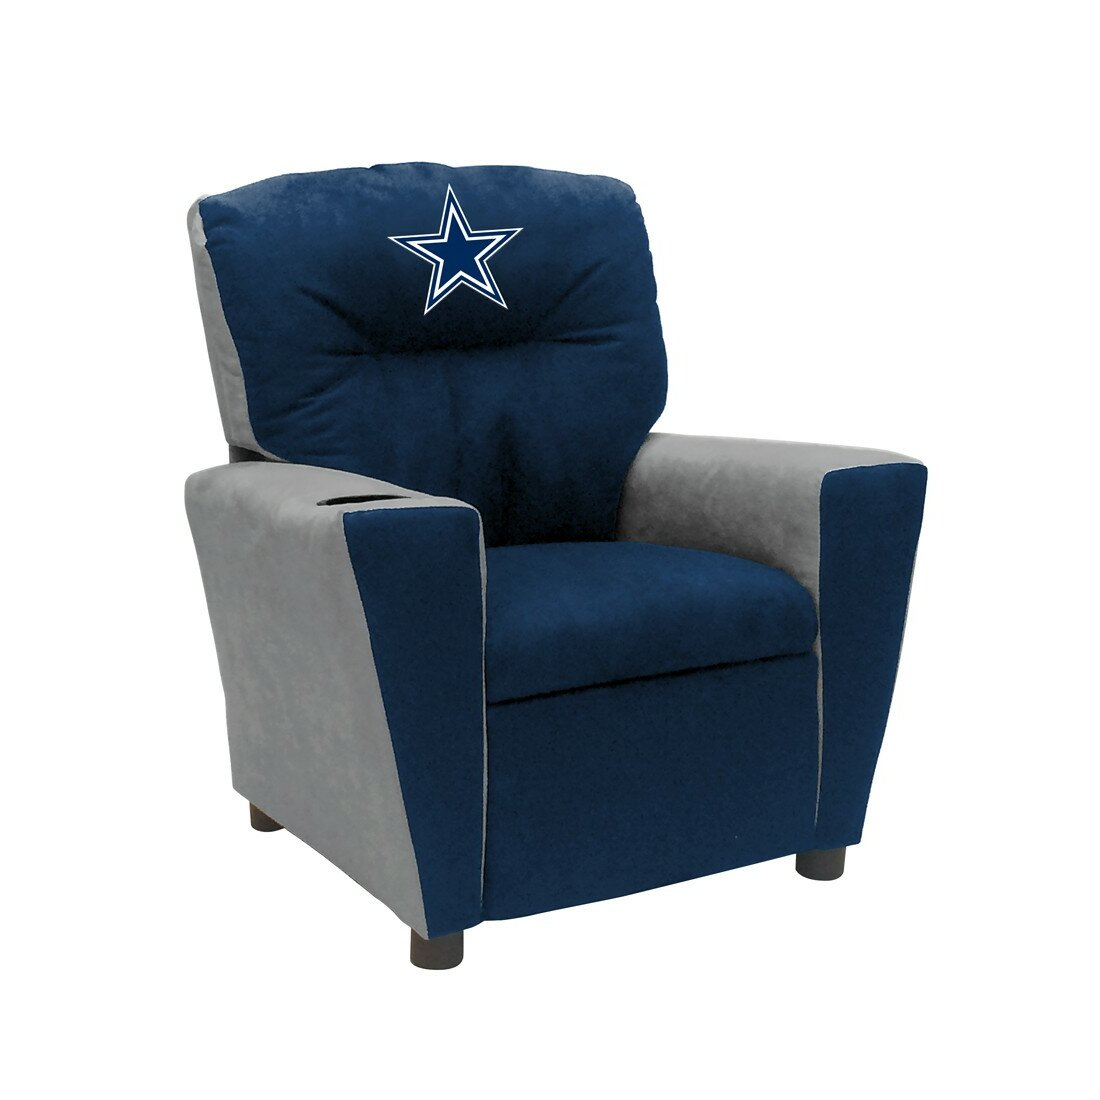 Imperial Nfl Kids Recliner With Cup Holder Amp Reviews